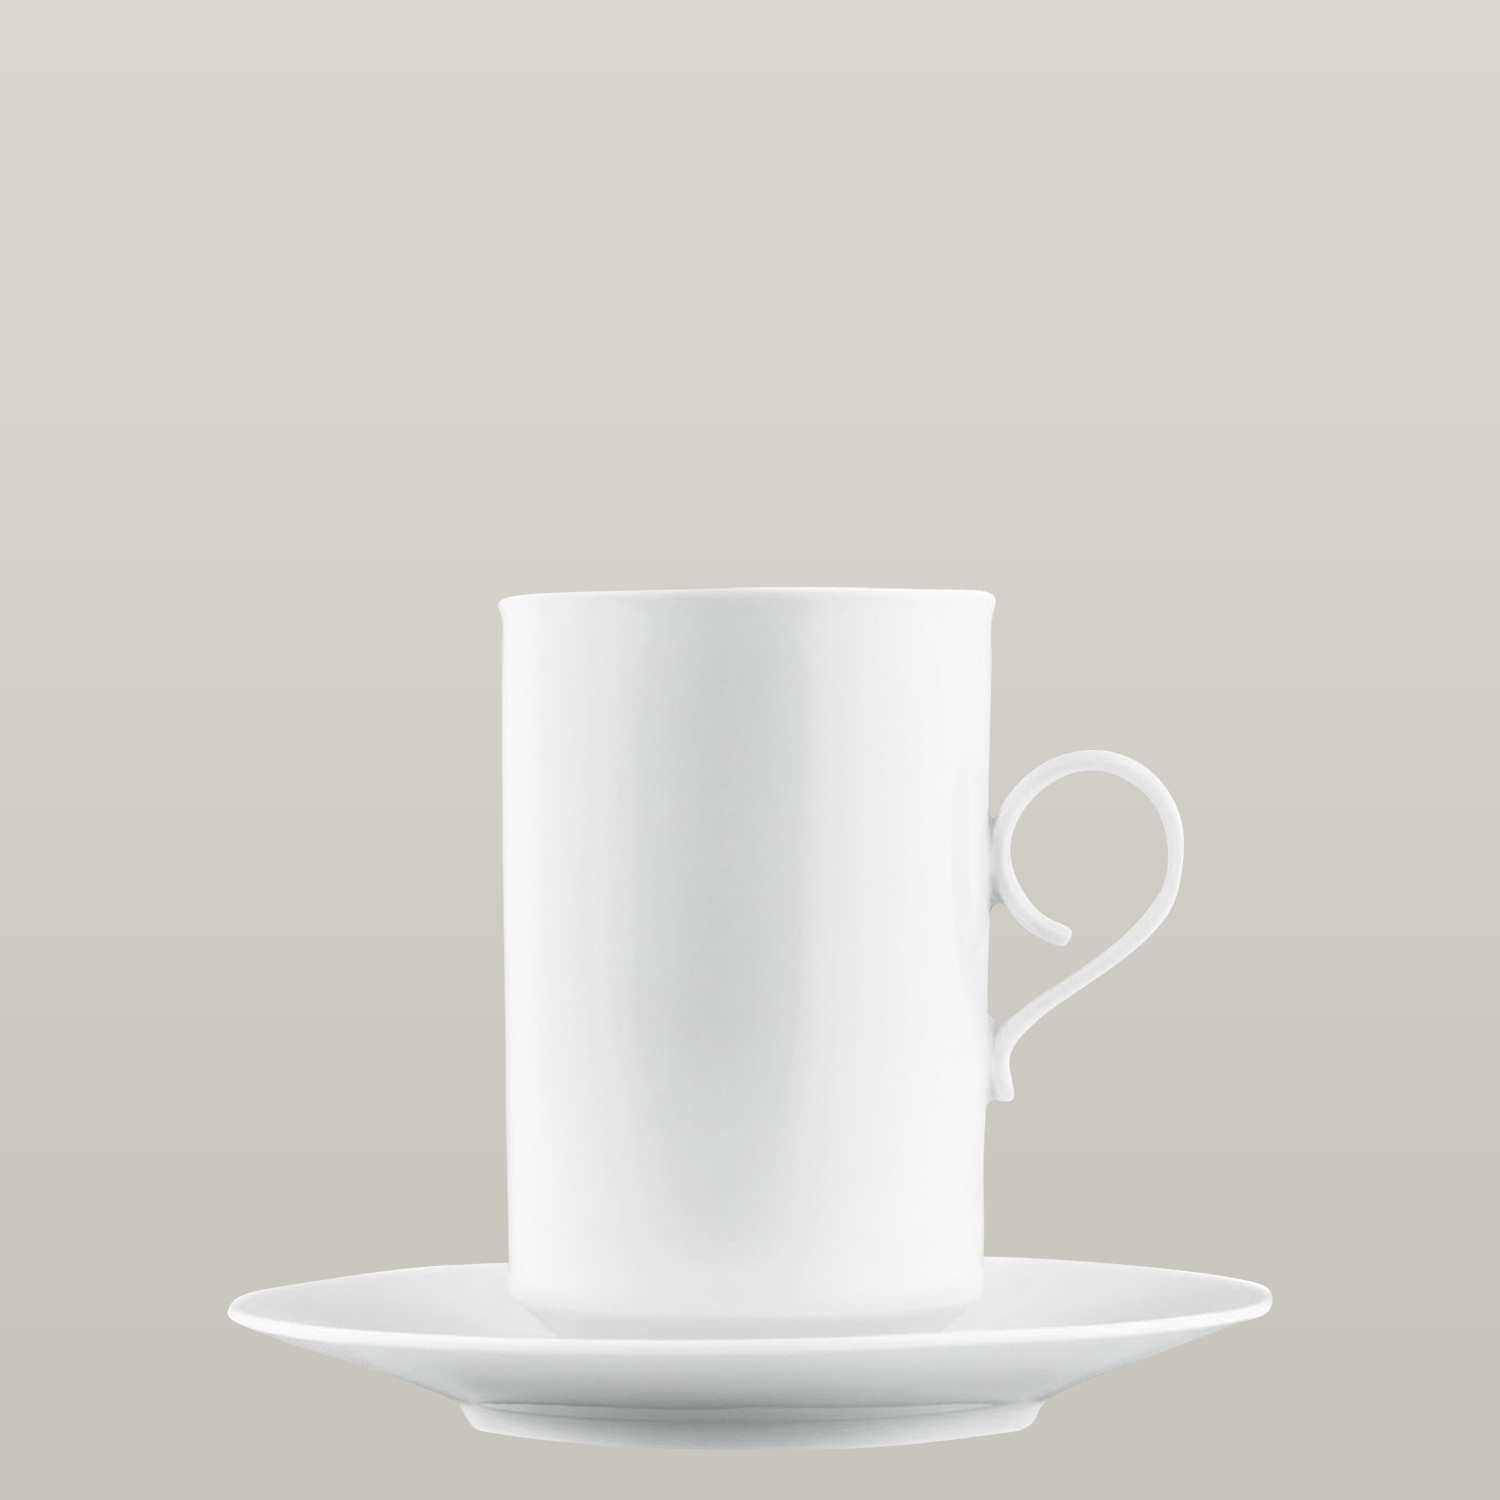 Hot chocolate cup, saucer